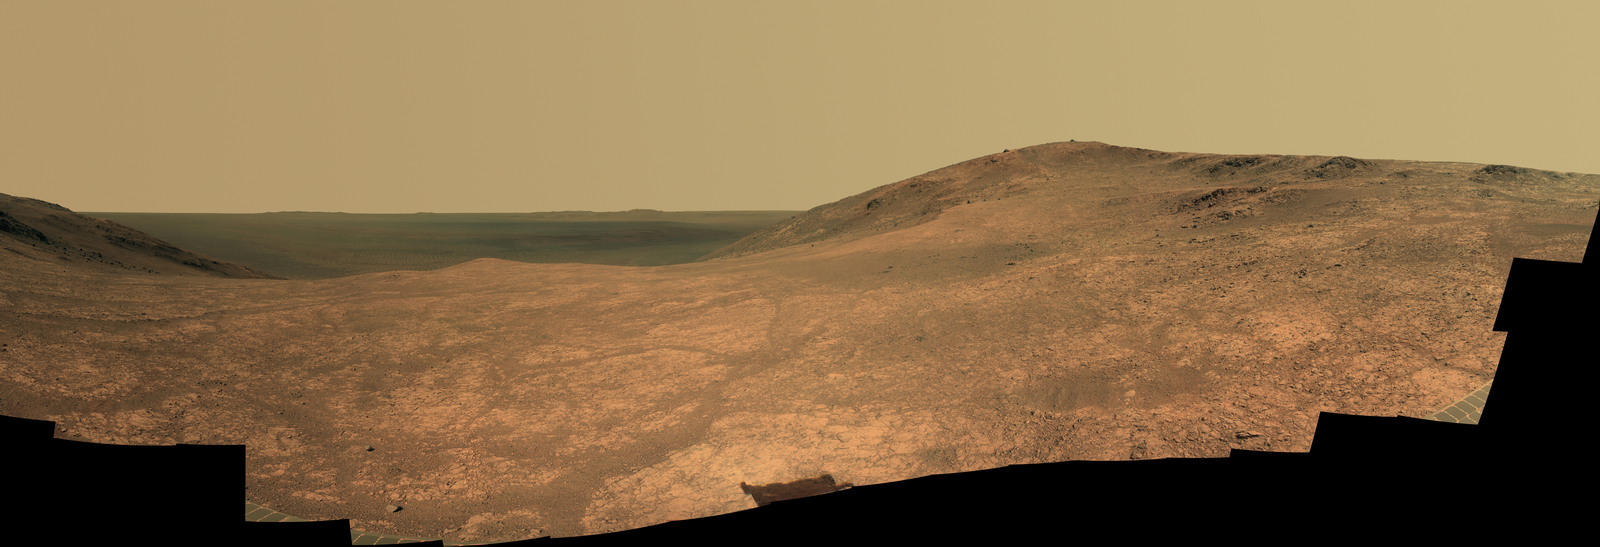 """Marathon Valley"" on Mars opens to a view across Endeavour Crater in this scene from the Pancam of NASA's Mars rover Opportunity. The scene merges many exposures taken during April and May 2016. The view spans from north (left) to west-southwest. Its foreground shows the valley's fractured texture."